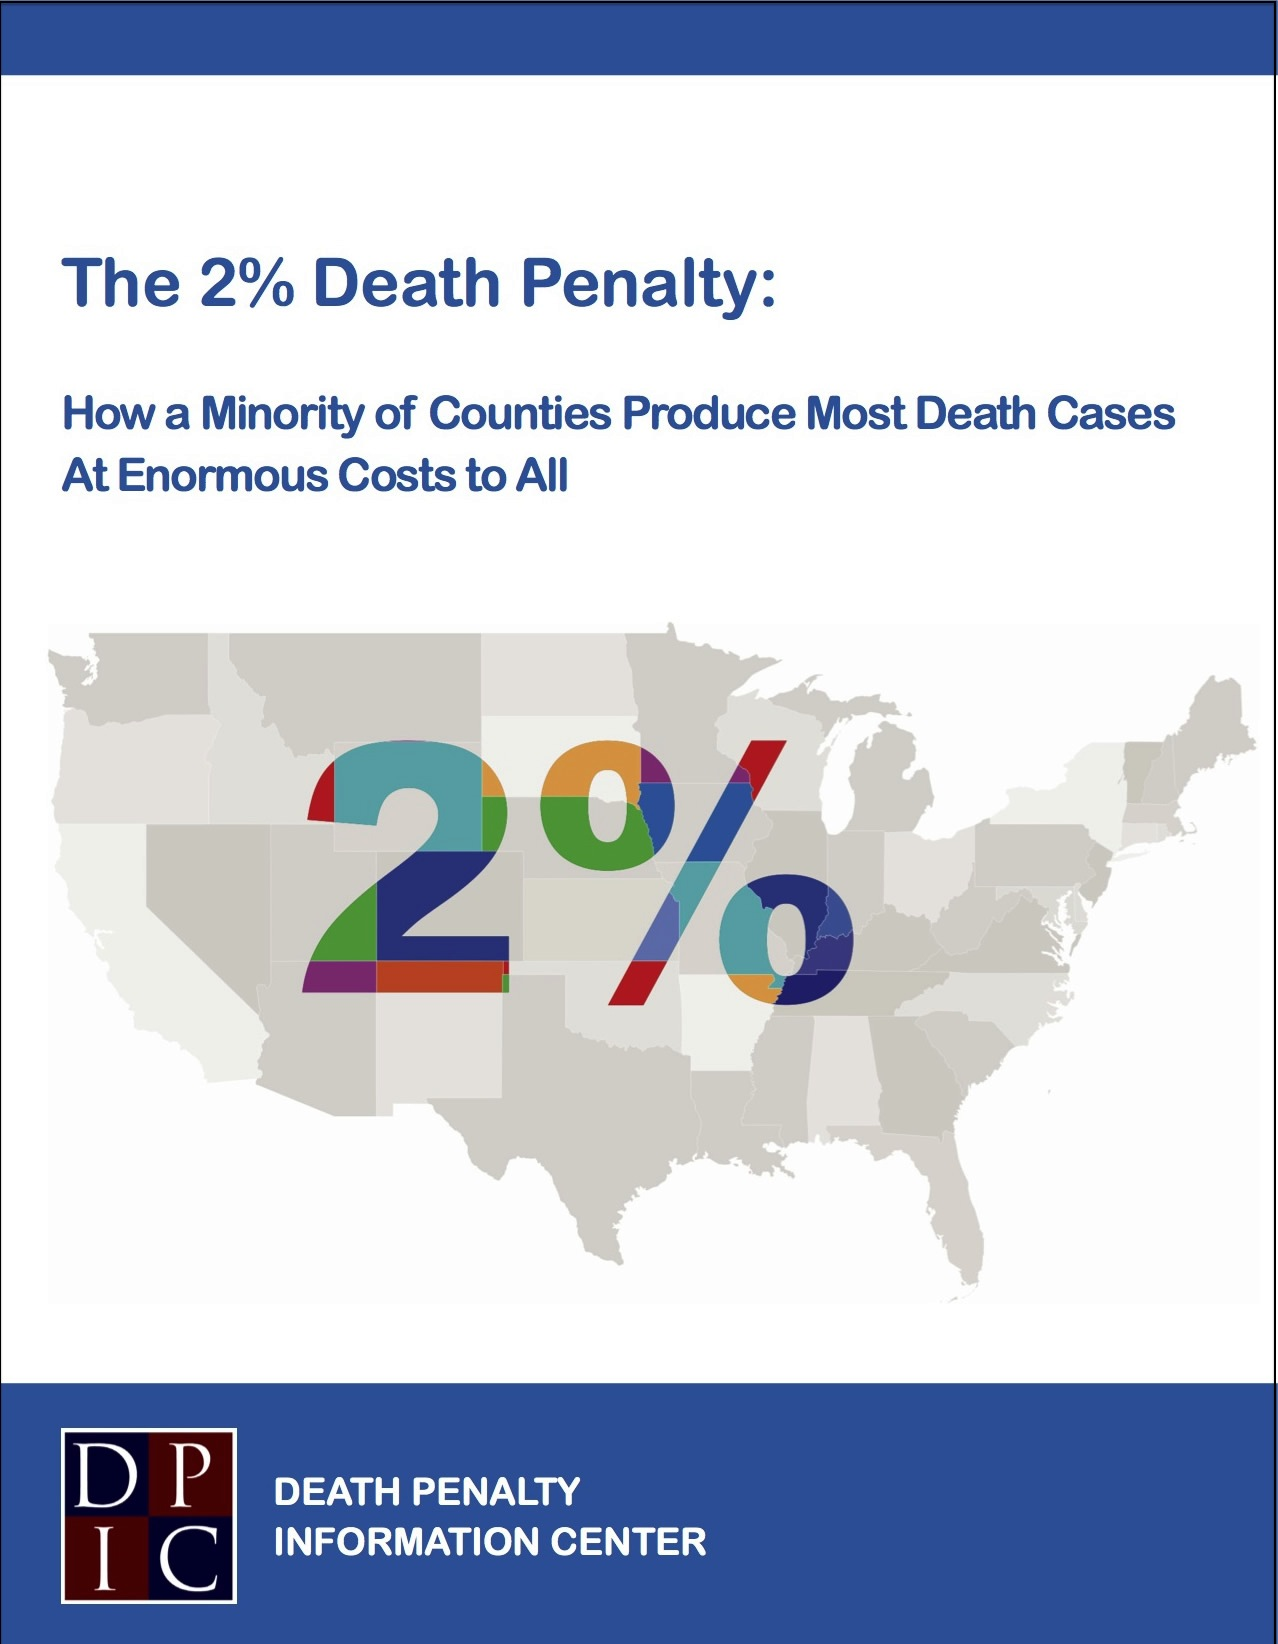 benefits of the death penalty In kansas, a legislative audit found that the average cost of a death penalty case when compared to a similar non-death penalty case was 70 percent more [1] in maryland.